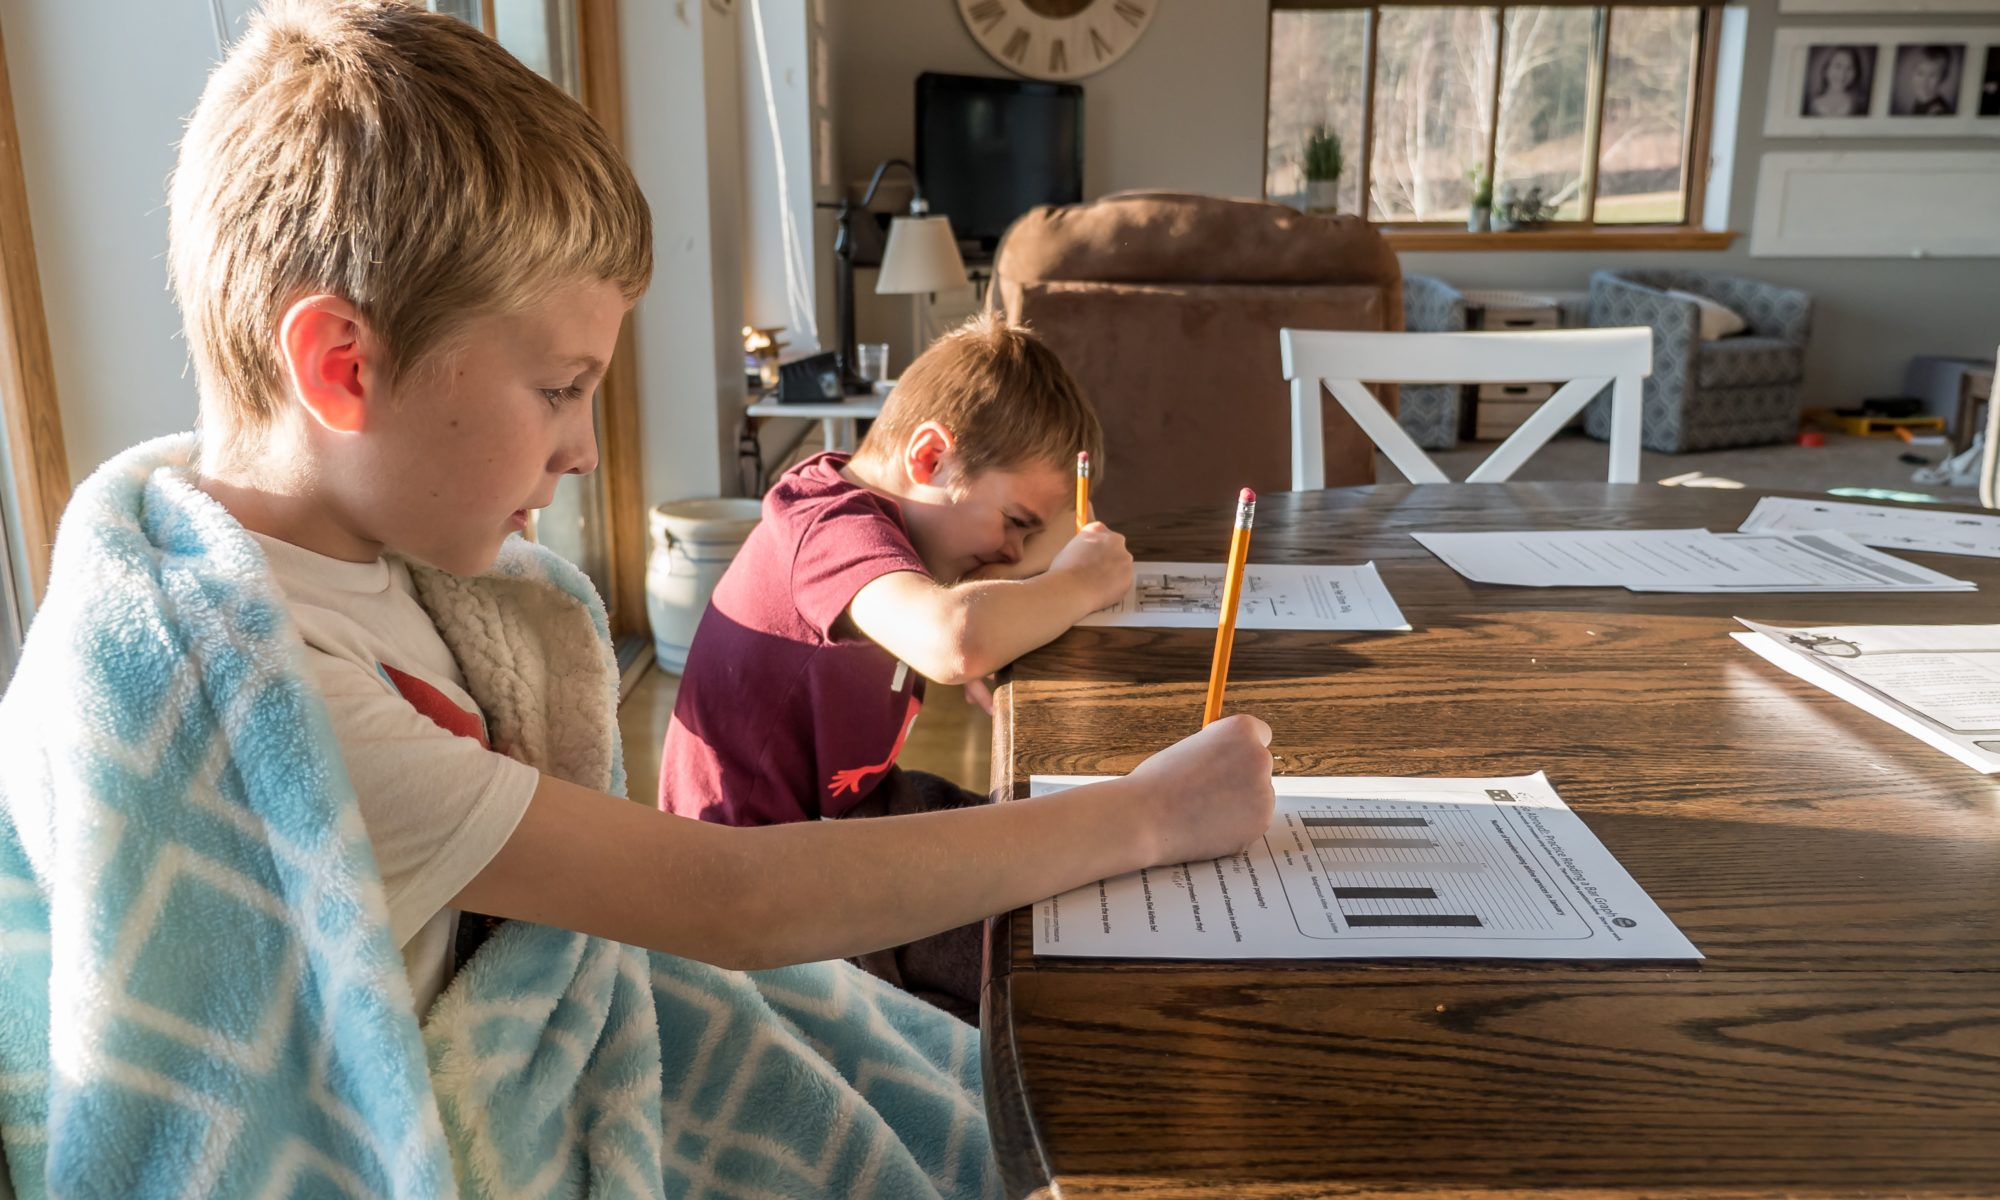 Picture of two young boys doing homework at a kitchen table